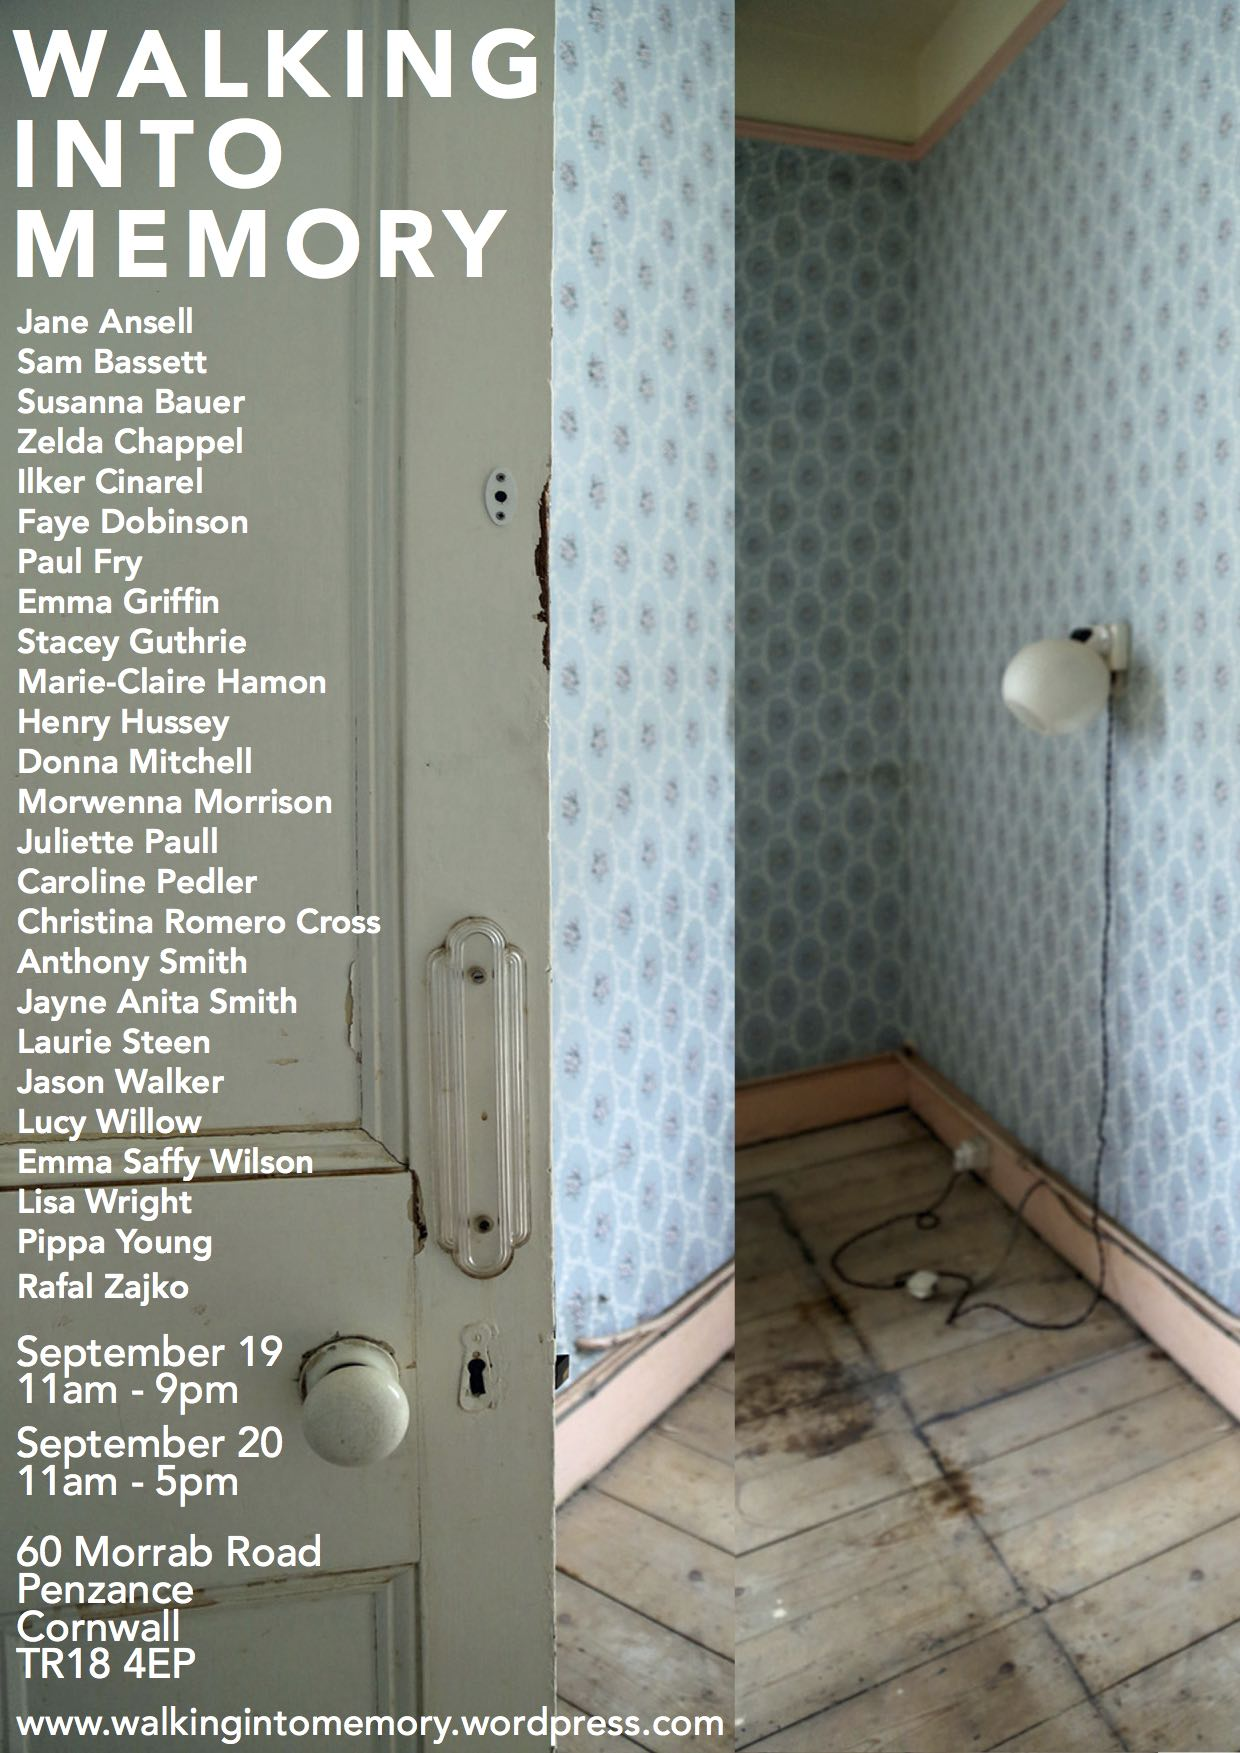 Walking into Memory PDF final flyer design